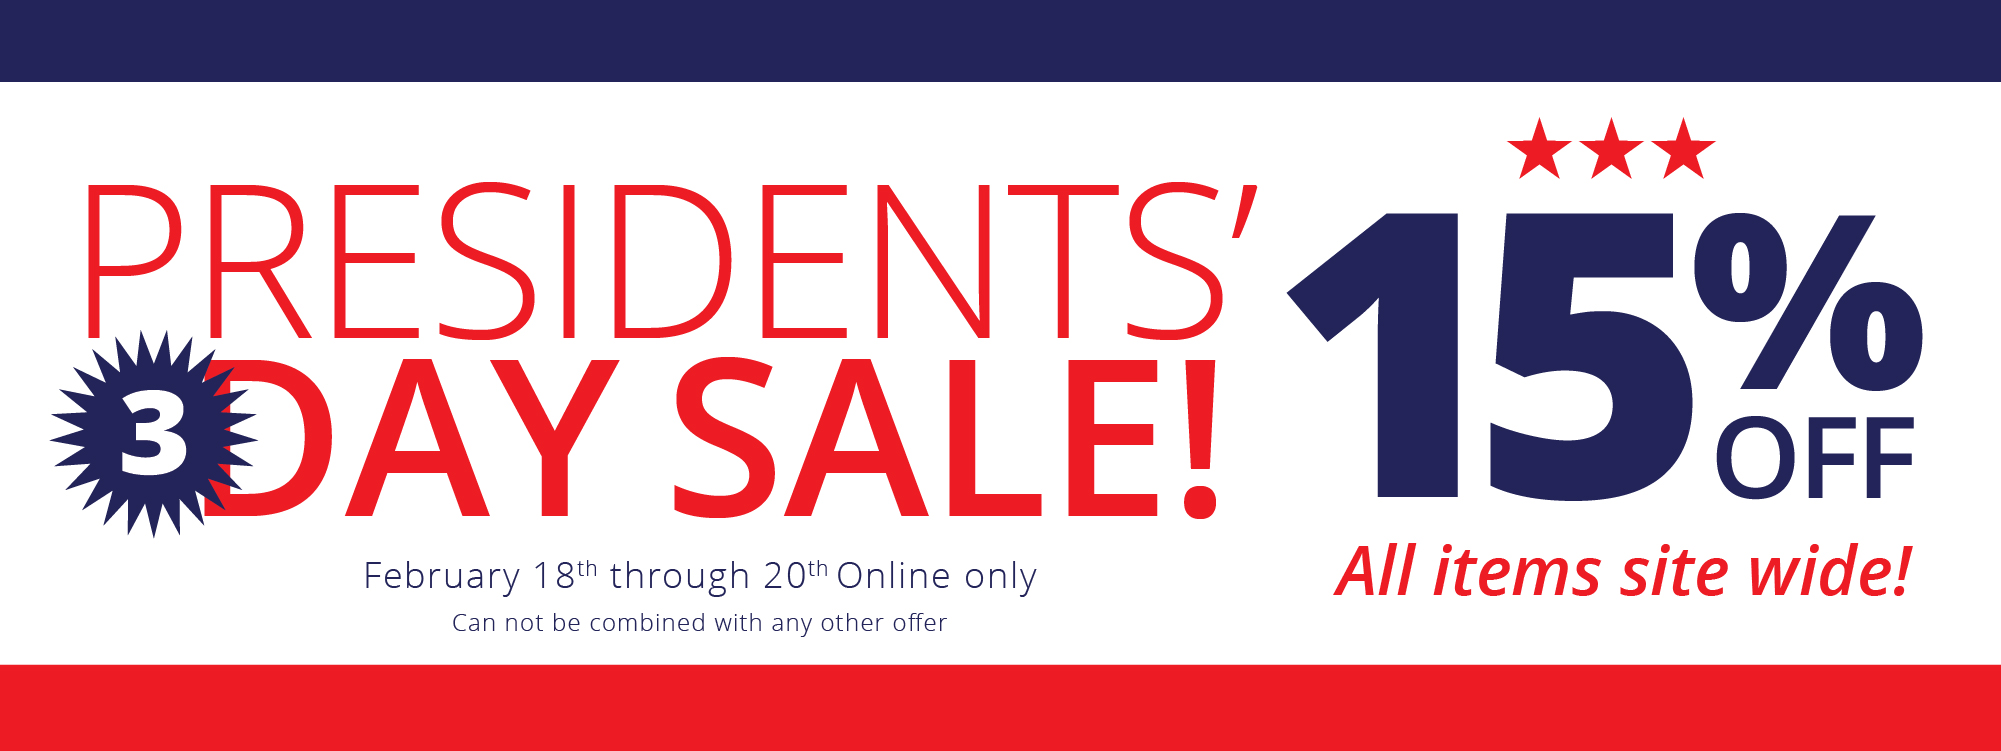 Presidents' 3 Day Sale!